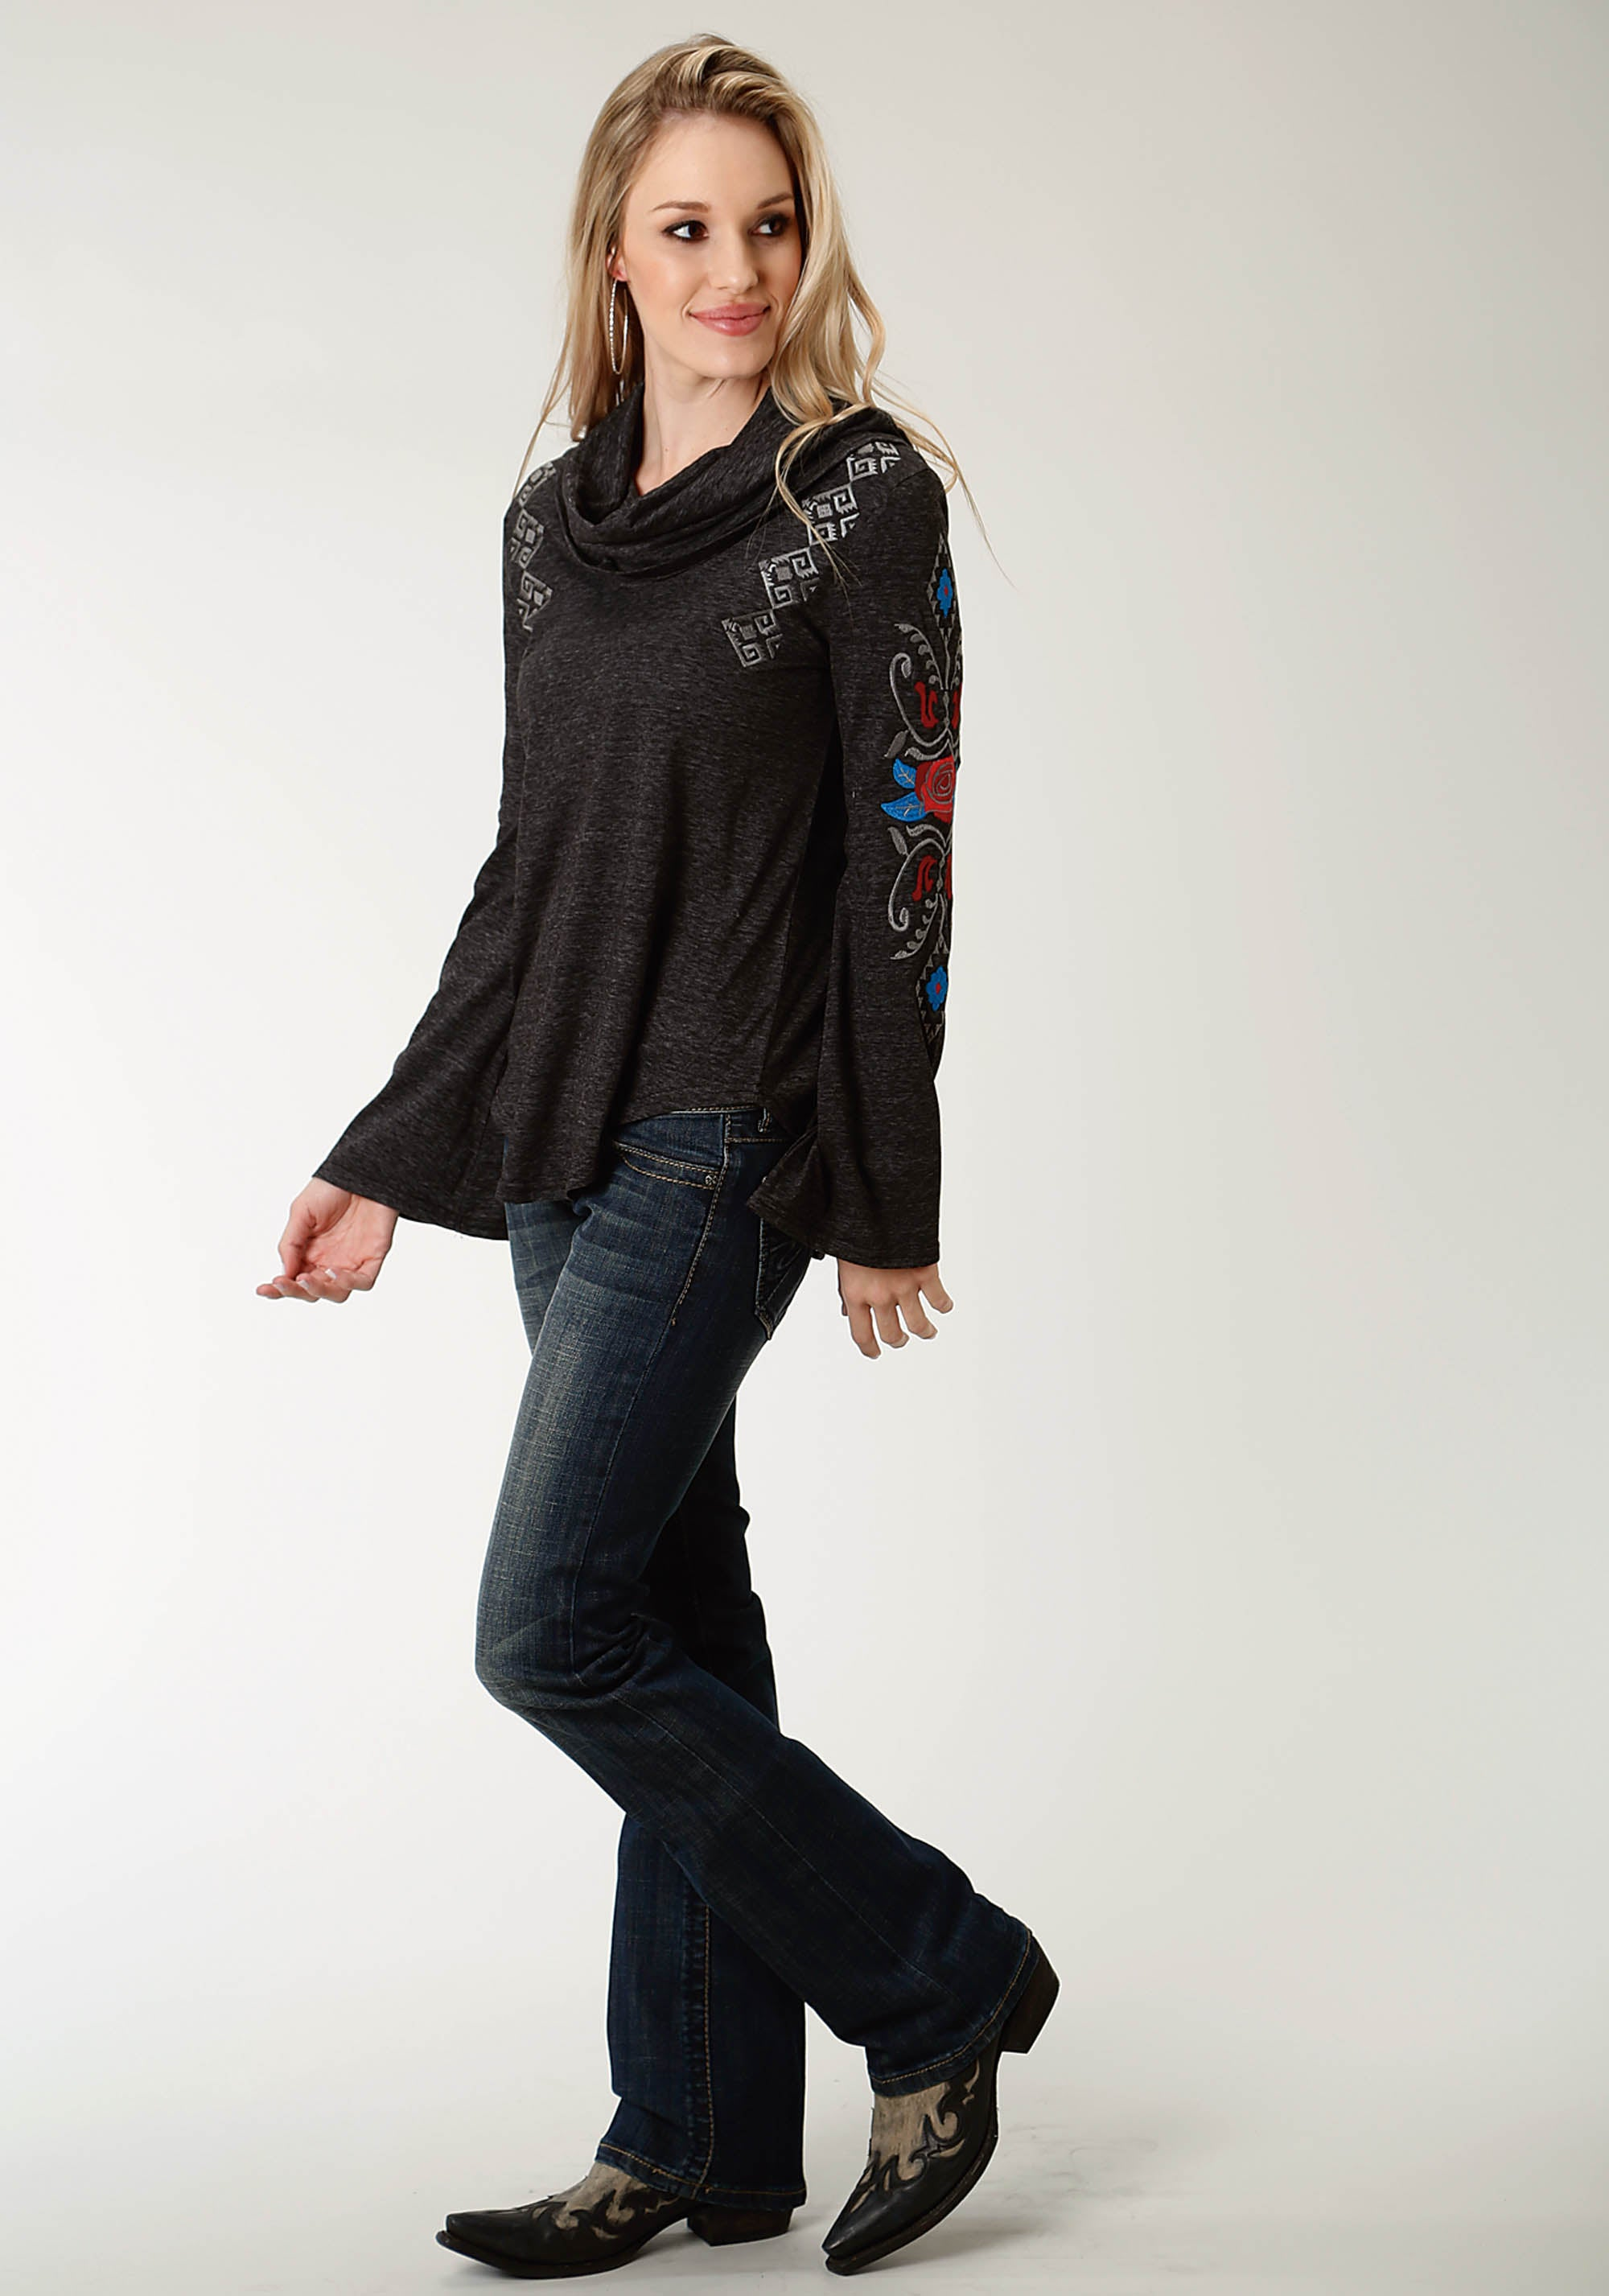 ROPER WOMENS BLACK 2321 T/C HEATHER JERSEY COWL NECK TOP STUDIO WEST- A ROSE IS A ROSE LONG SLEEVE